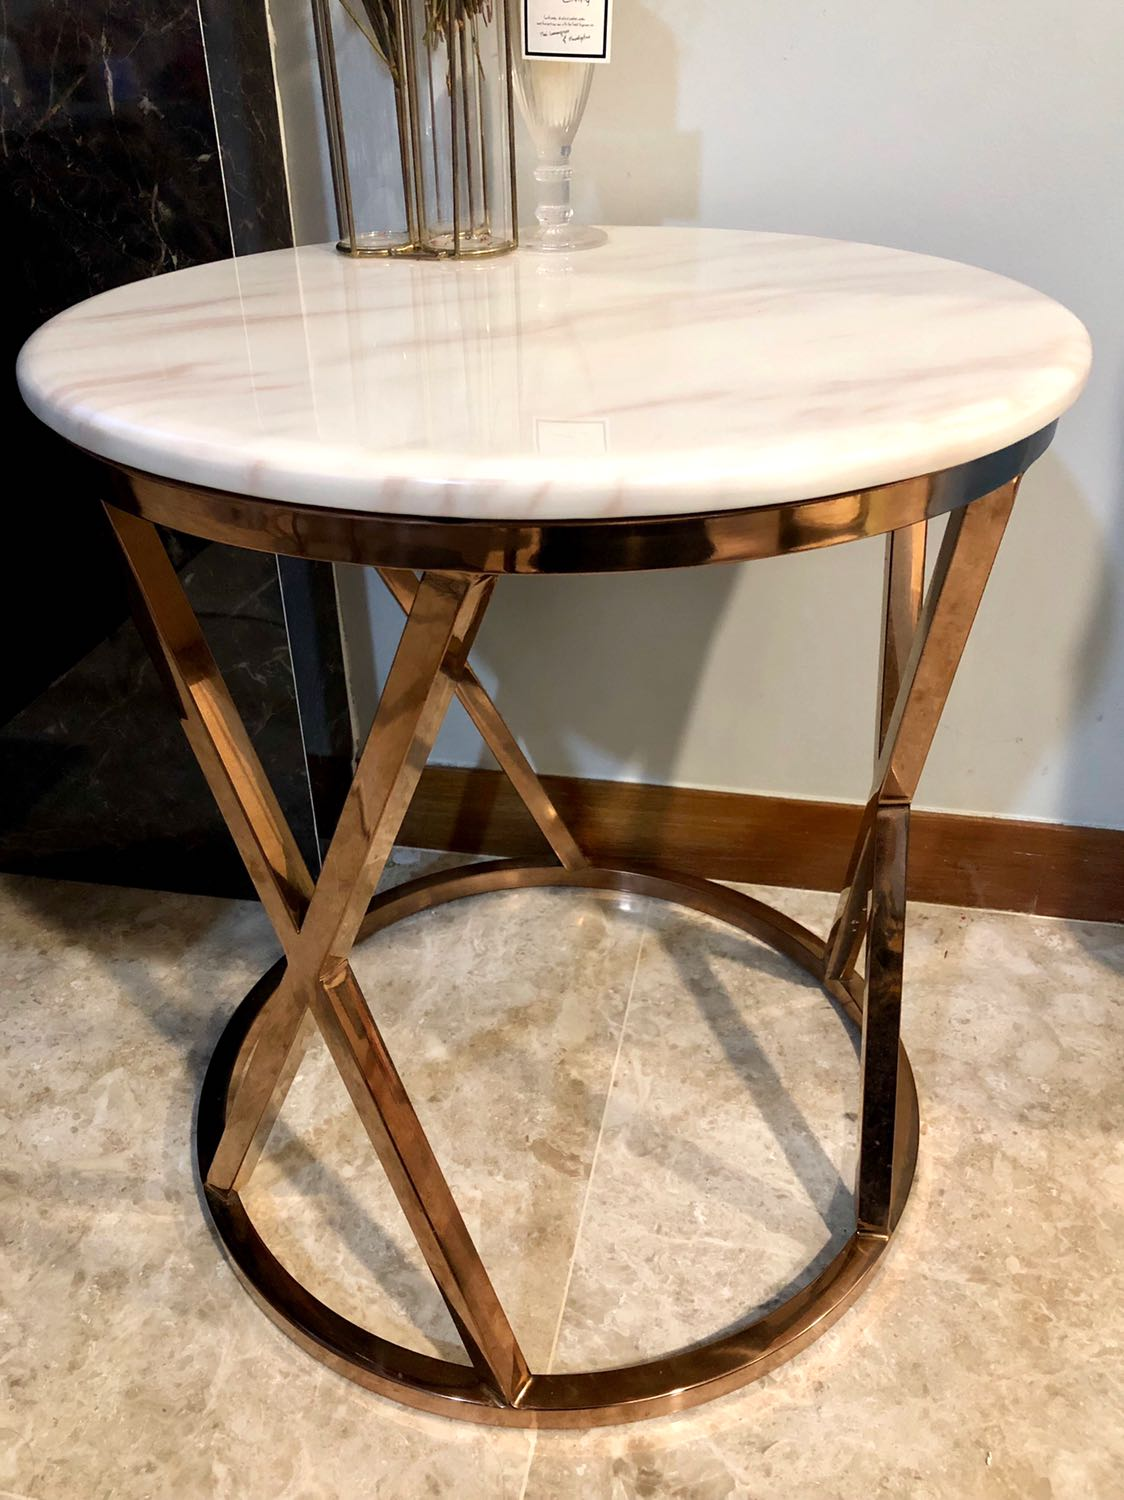 Picture of: Round Side Table With Rose Gold Legs And Marble Top Furniture Tables Chairs On Carousell